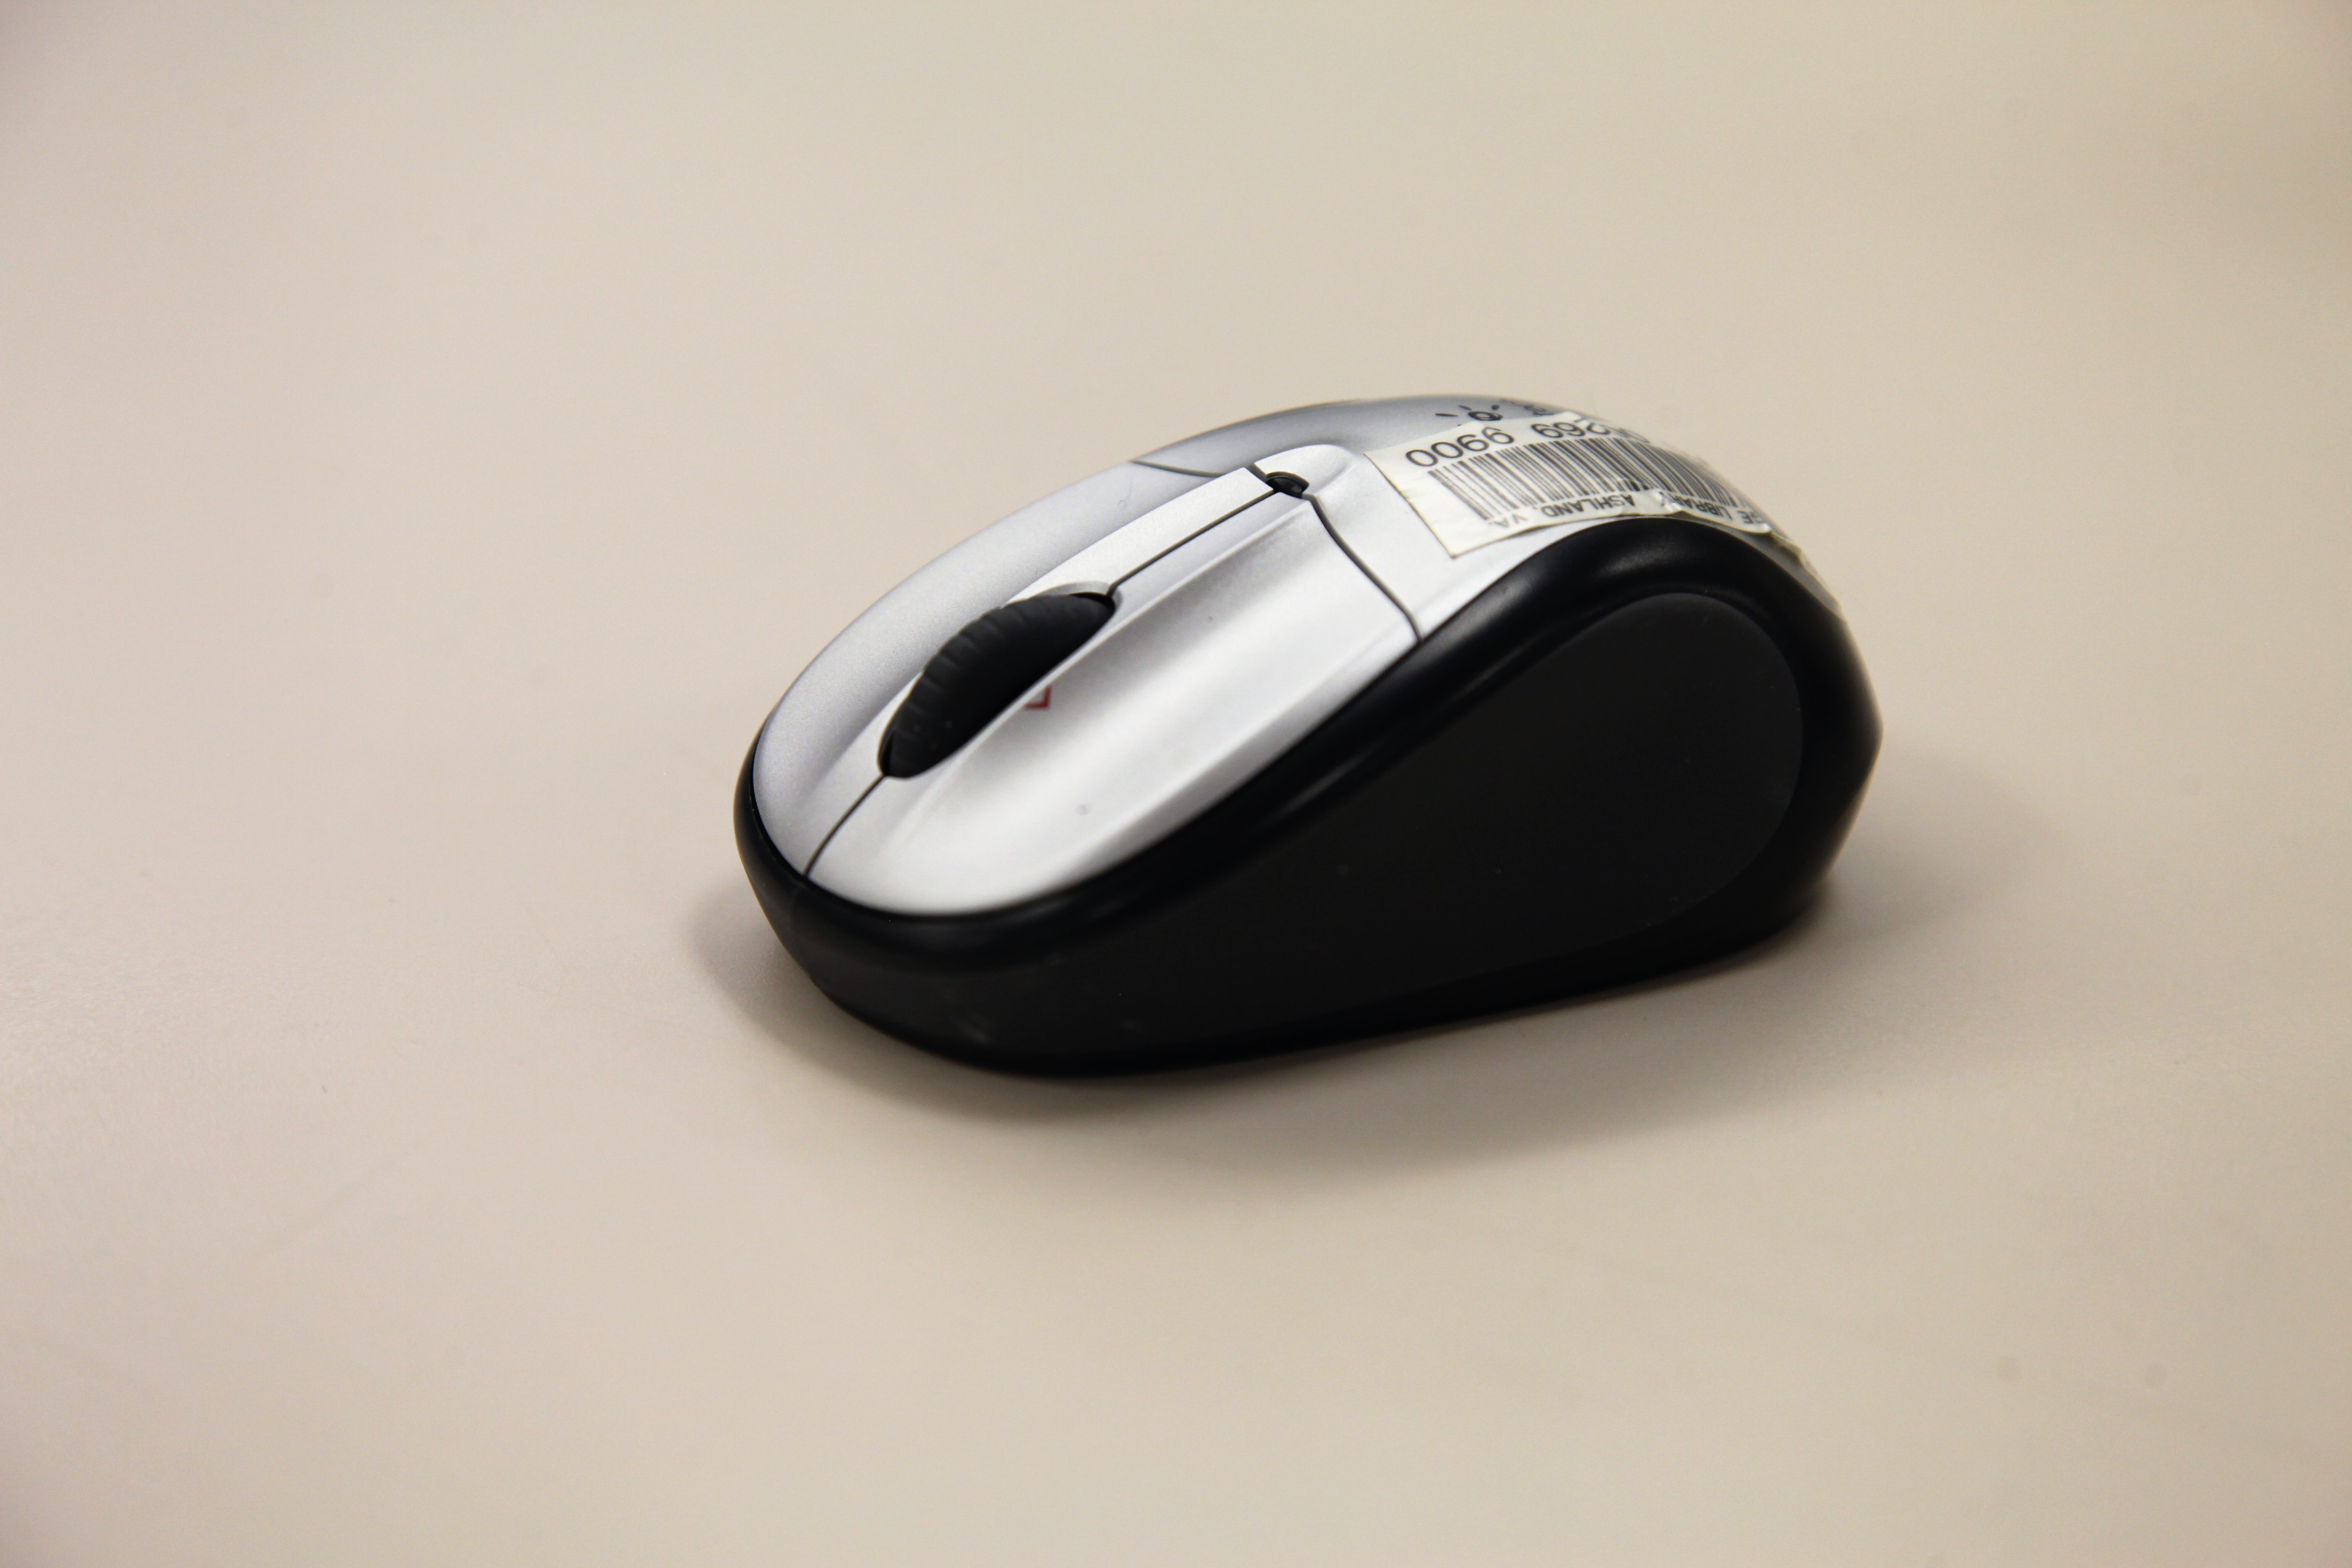 A computer mouse sitting on a counter